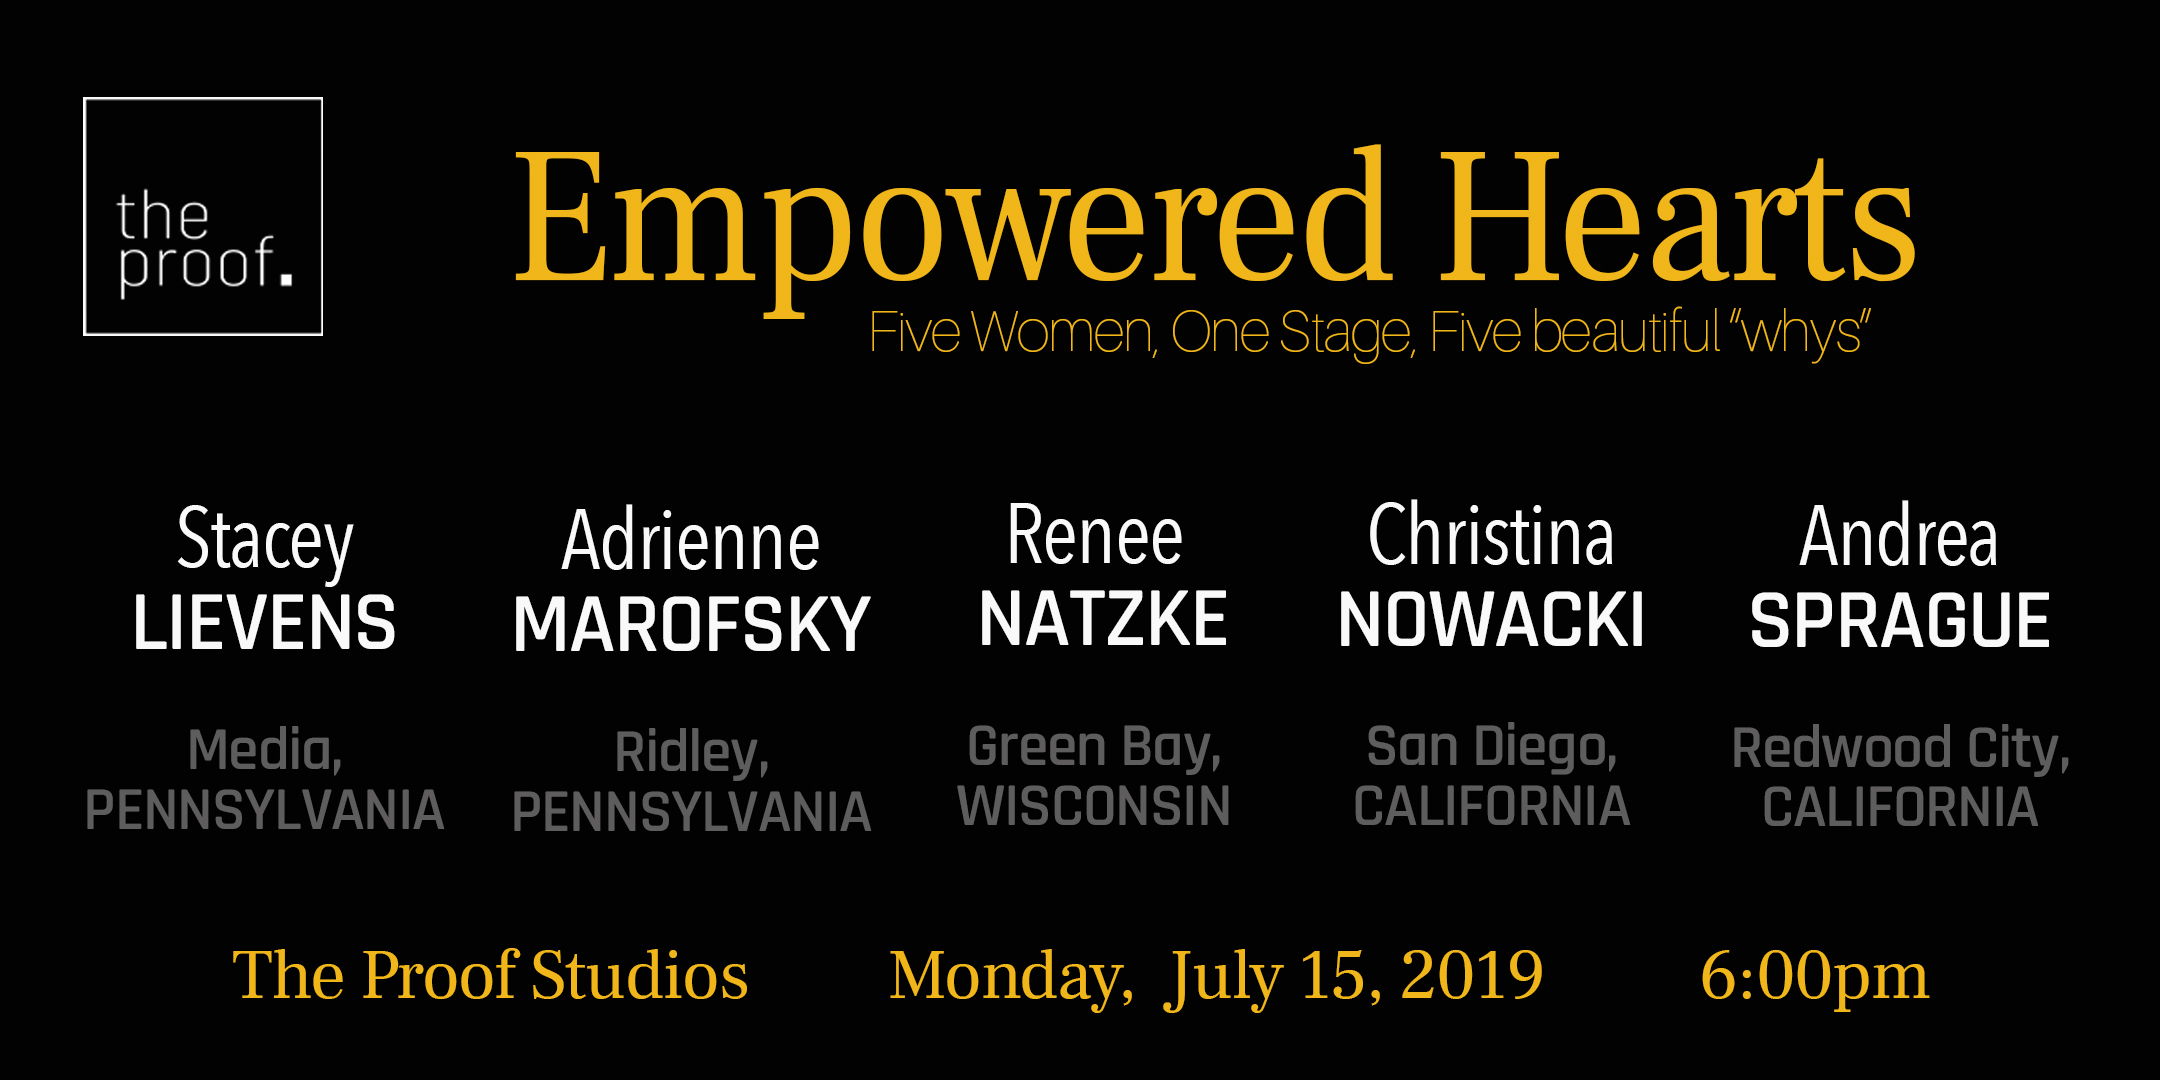 """July 15, 2019 - Empowered HeartsFive women from all over the United States share one stage to deliver their inspiring stories of """"why"""". Discover how each personal journey manifested in the gifts they give to the world today."""